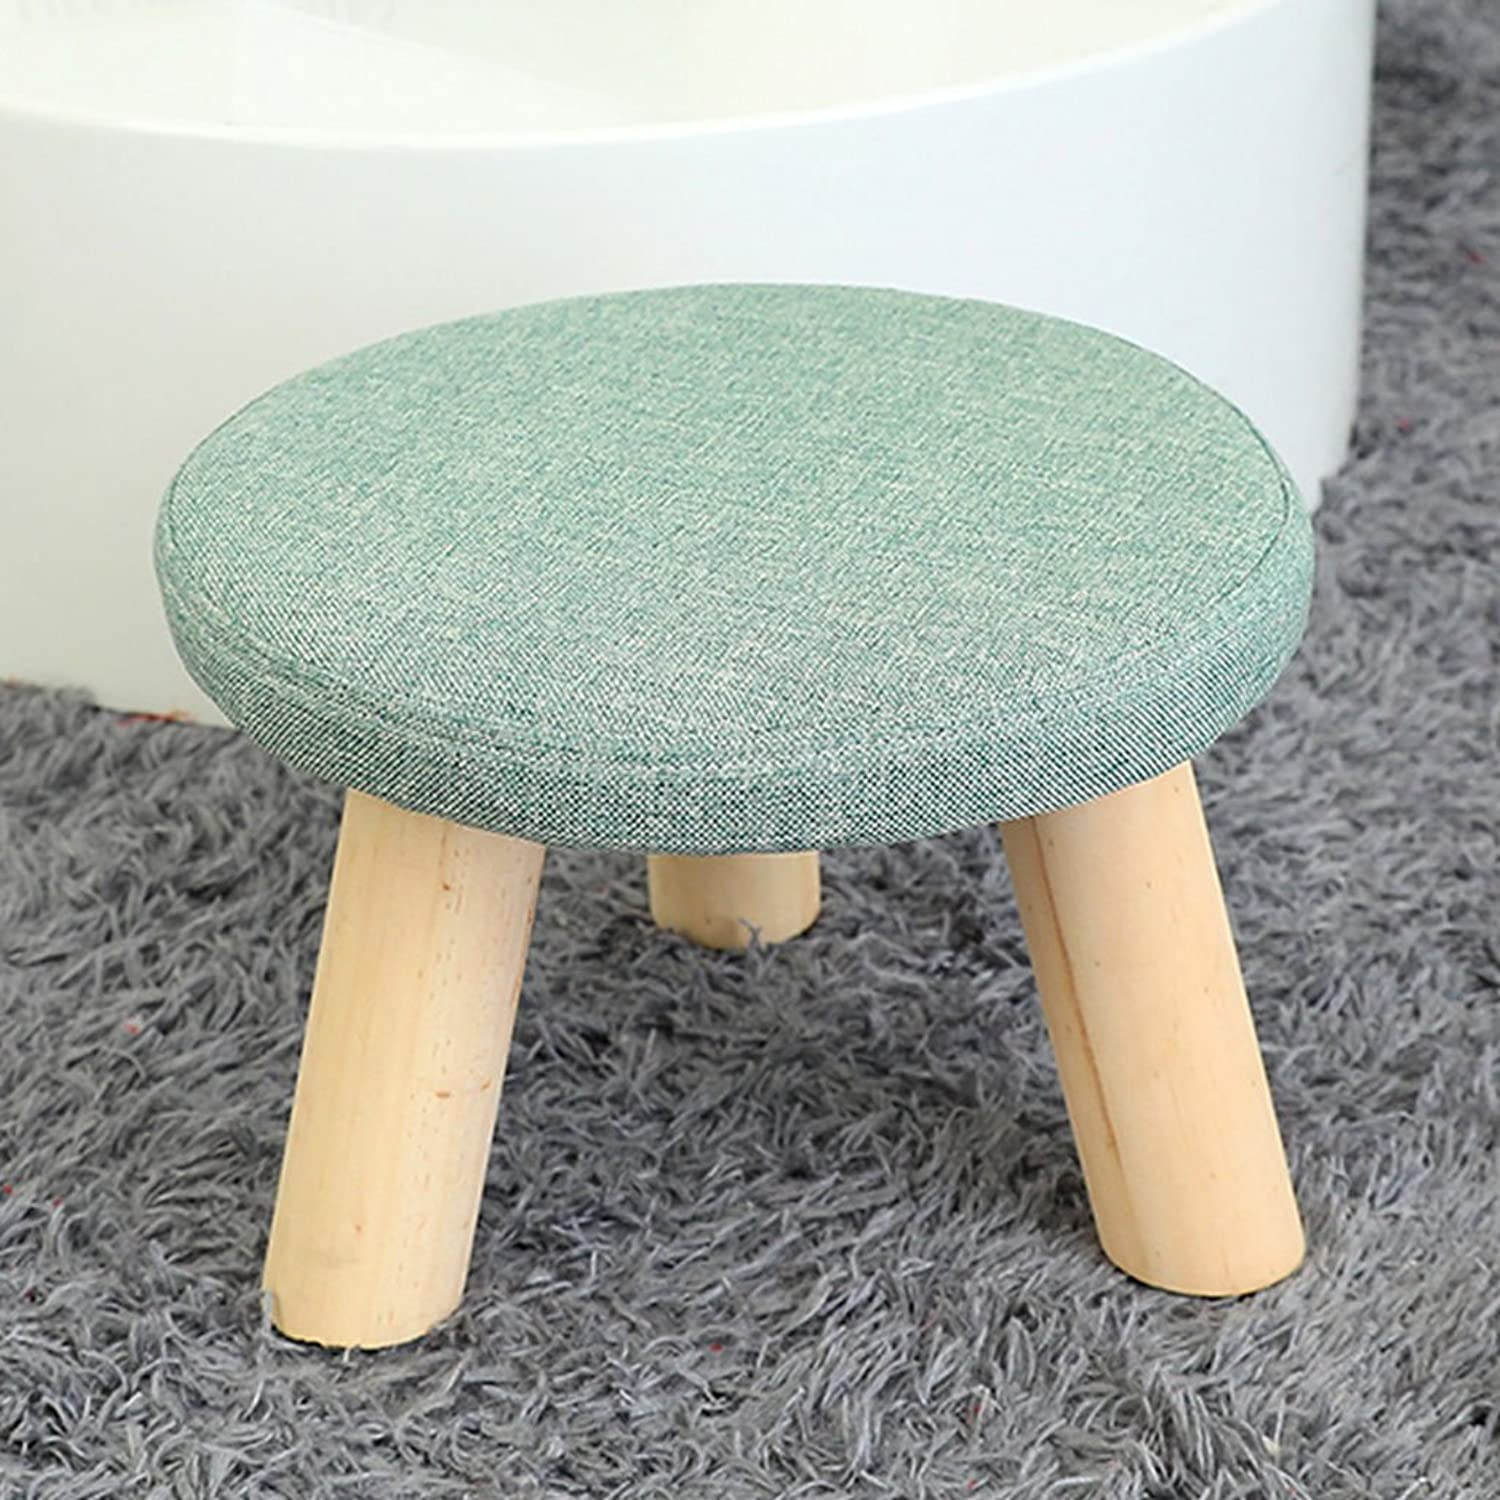 July Stool Footstool shoes Stools Wood Ideas shoes Stools Sofa Stools Small Stool Benches Creative Stools (color   A)